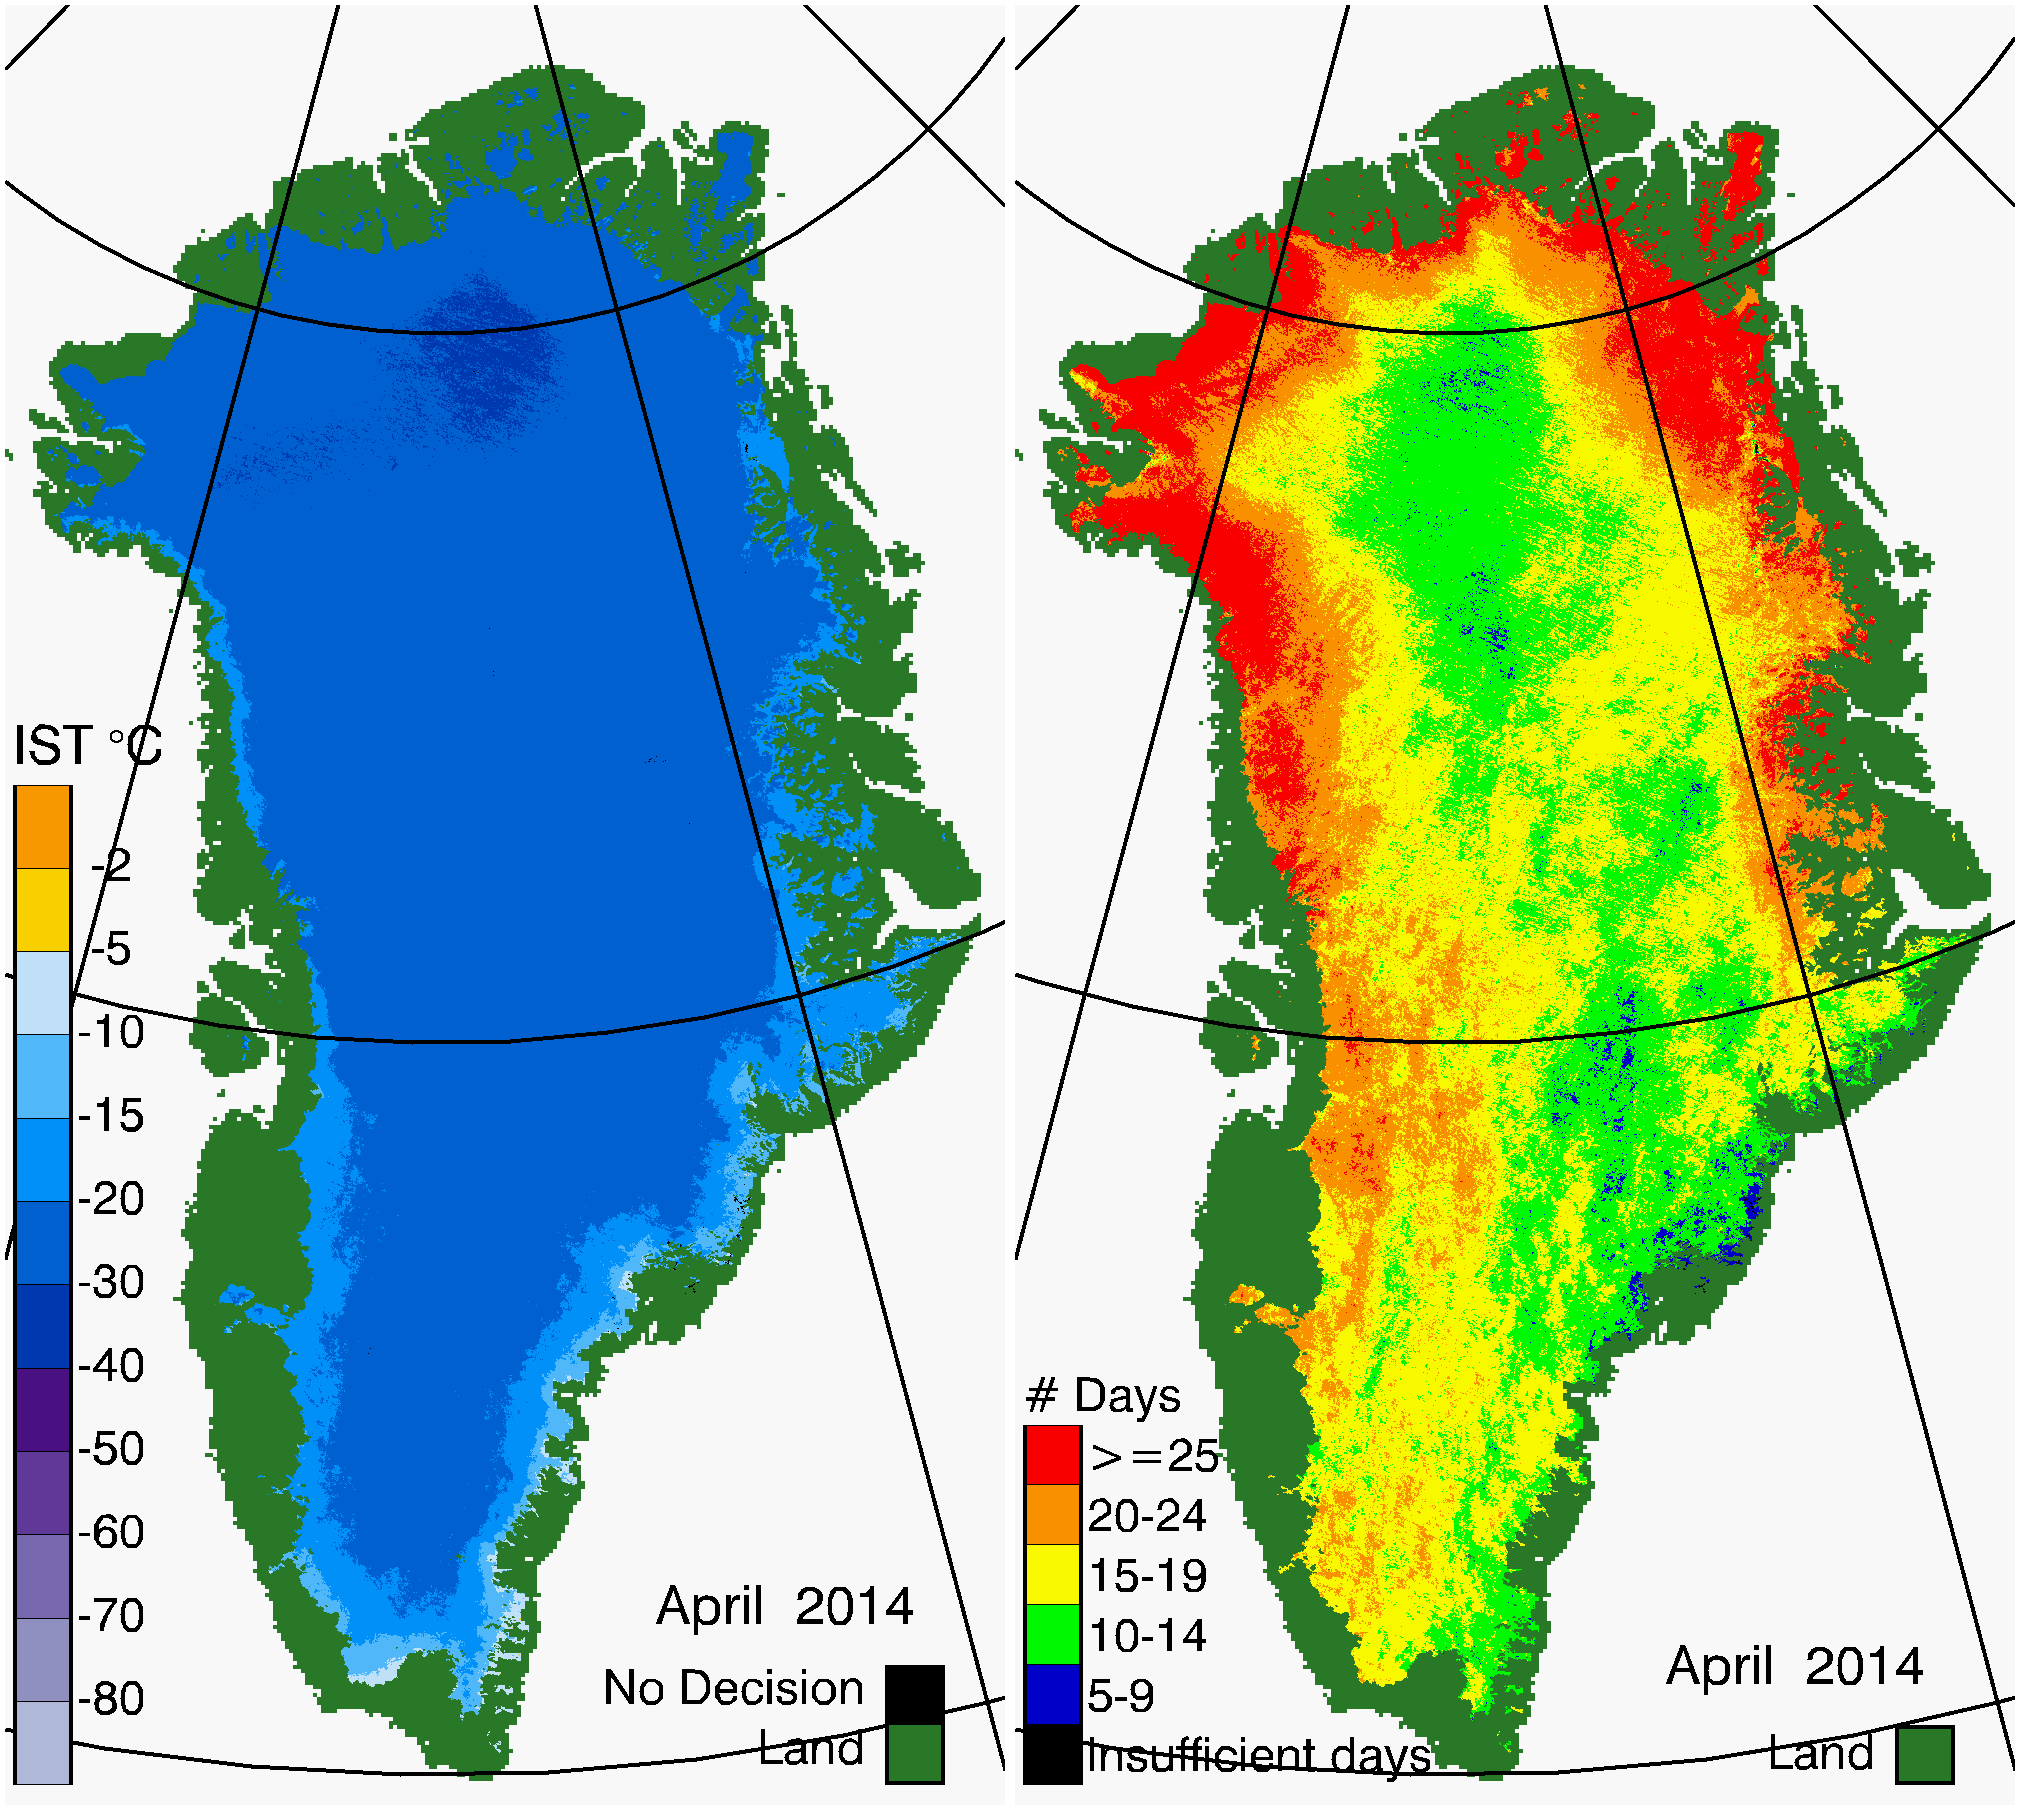 Greenland Surface Temp 04/2014